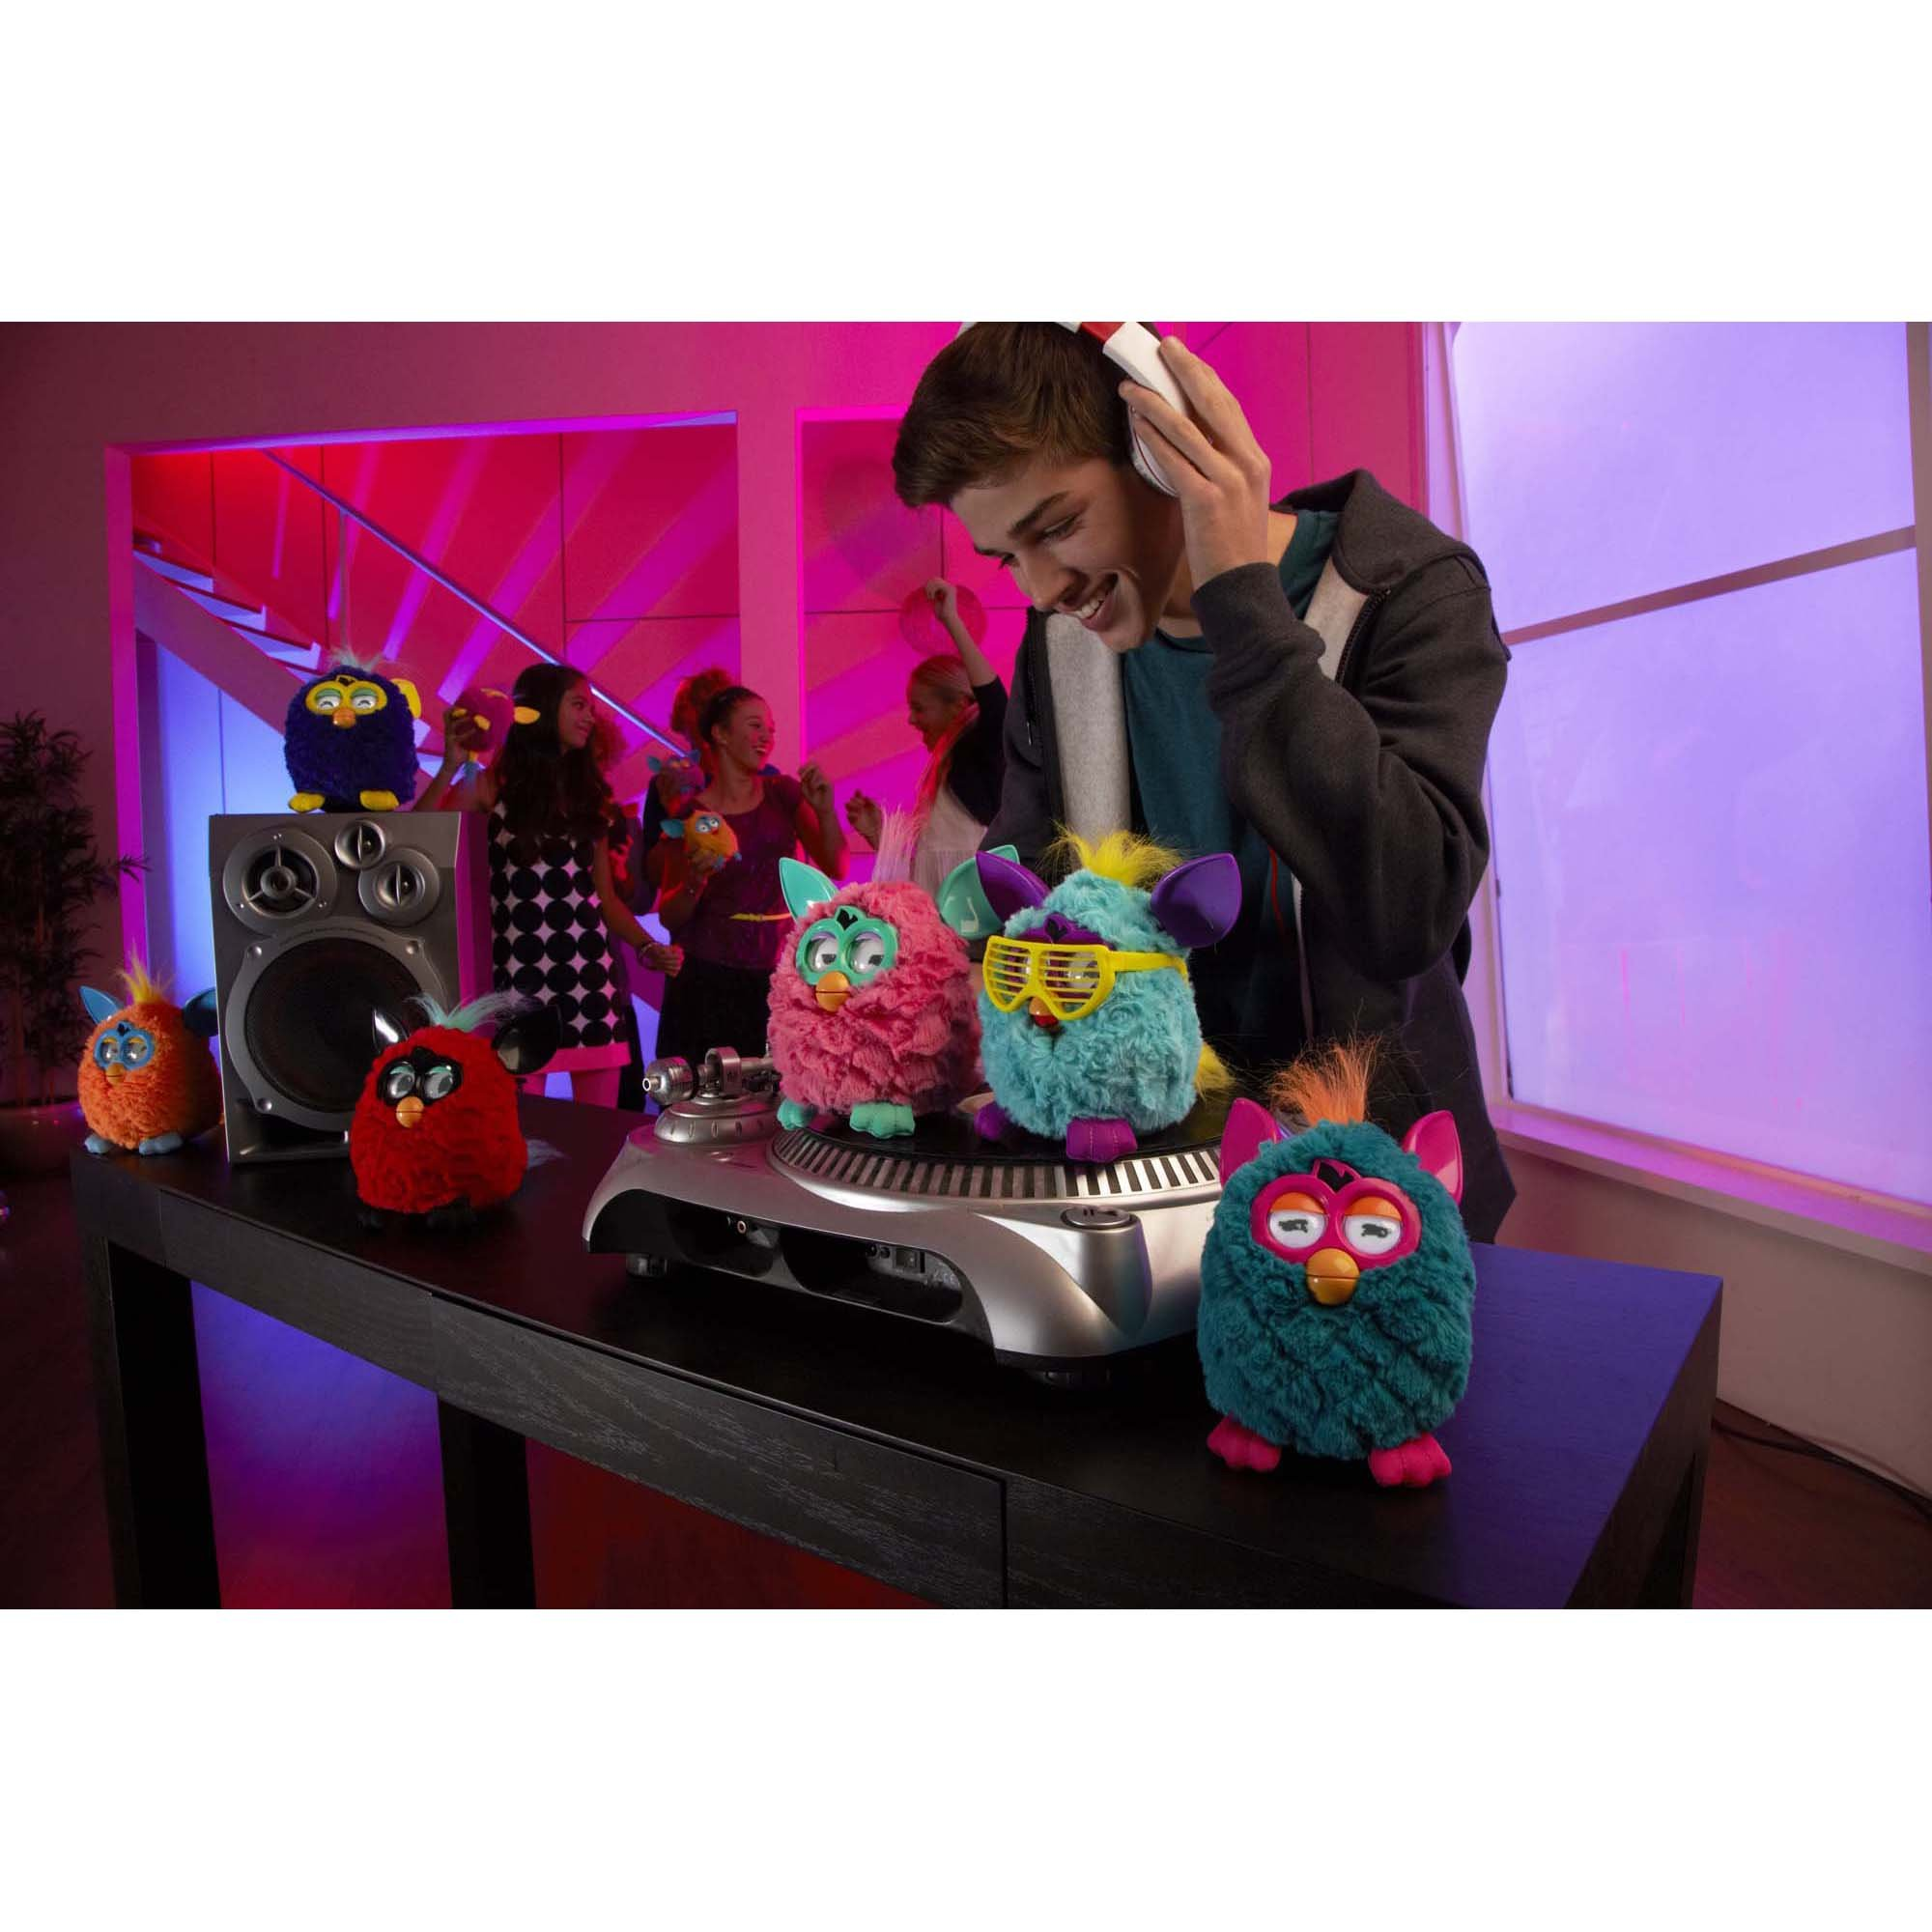 Furby (Pink/Teal) by Furby (Image #11)